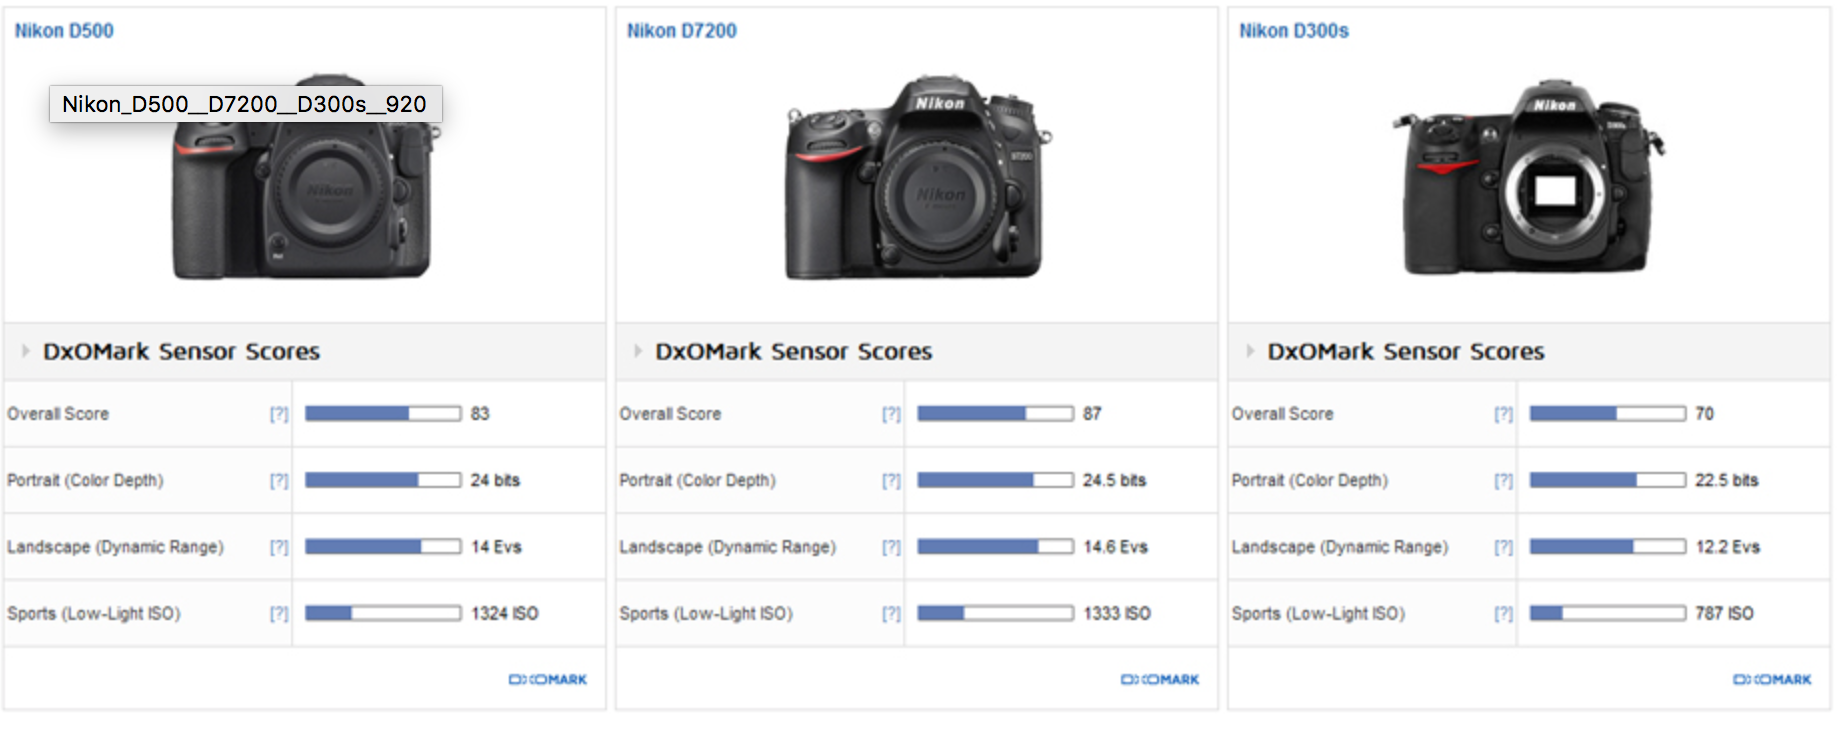 Blah blah blah. That's good chart for armchair photographer. In the real world, the D300 wins every time (under 800 ISO)